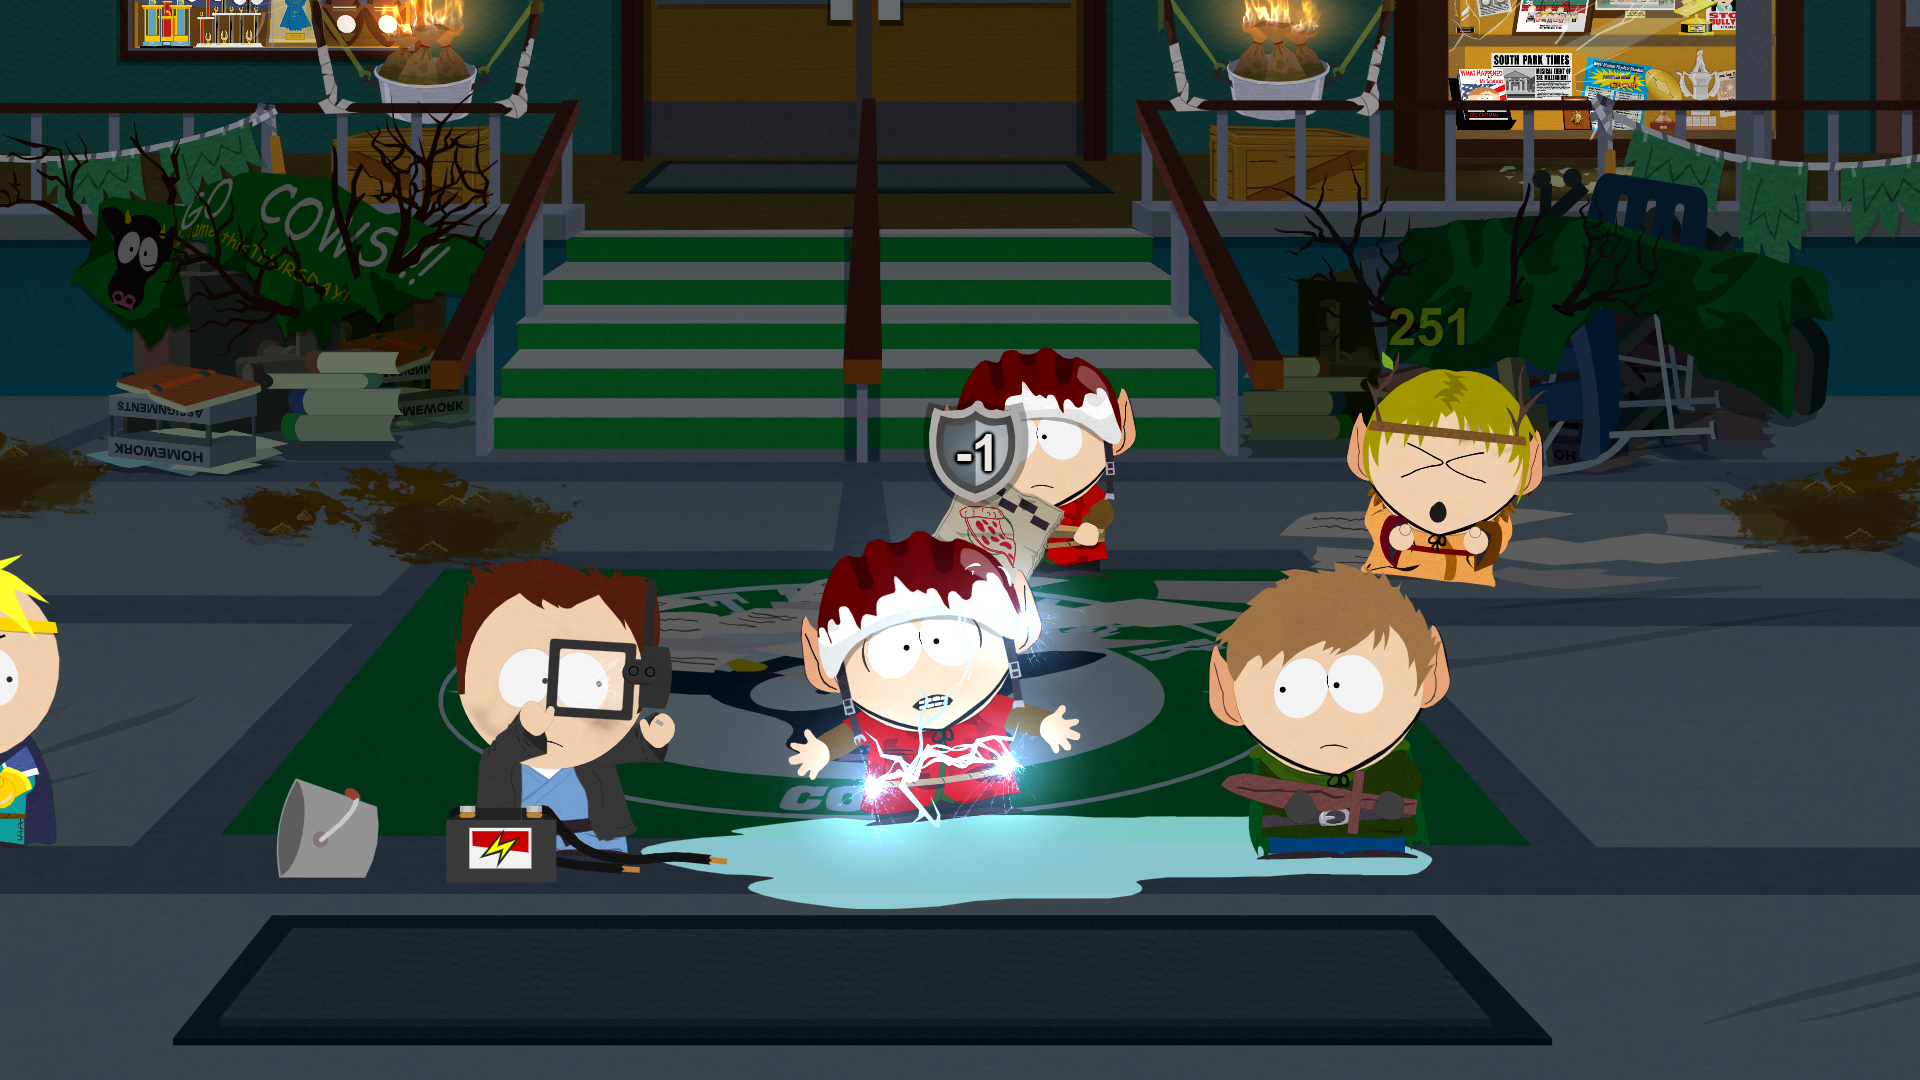 image south park the stick of truth screenshot 10 jpg south